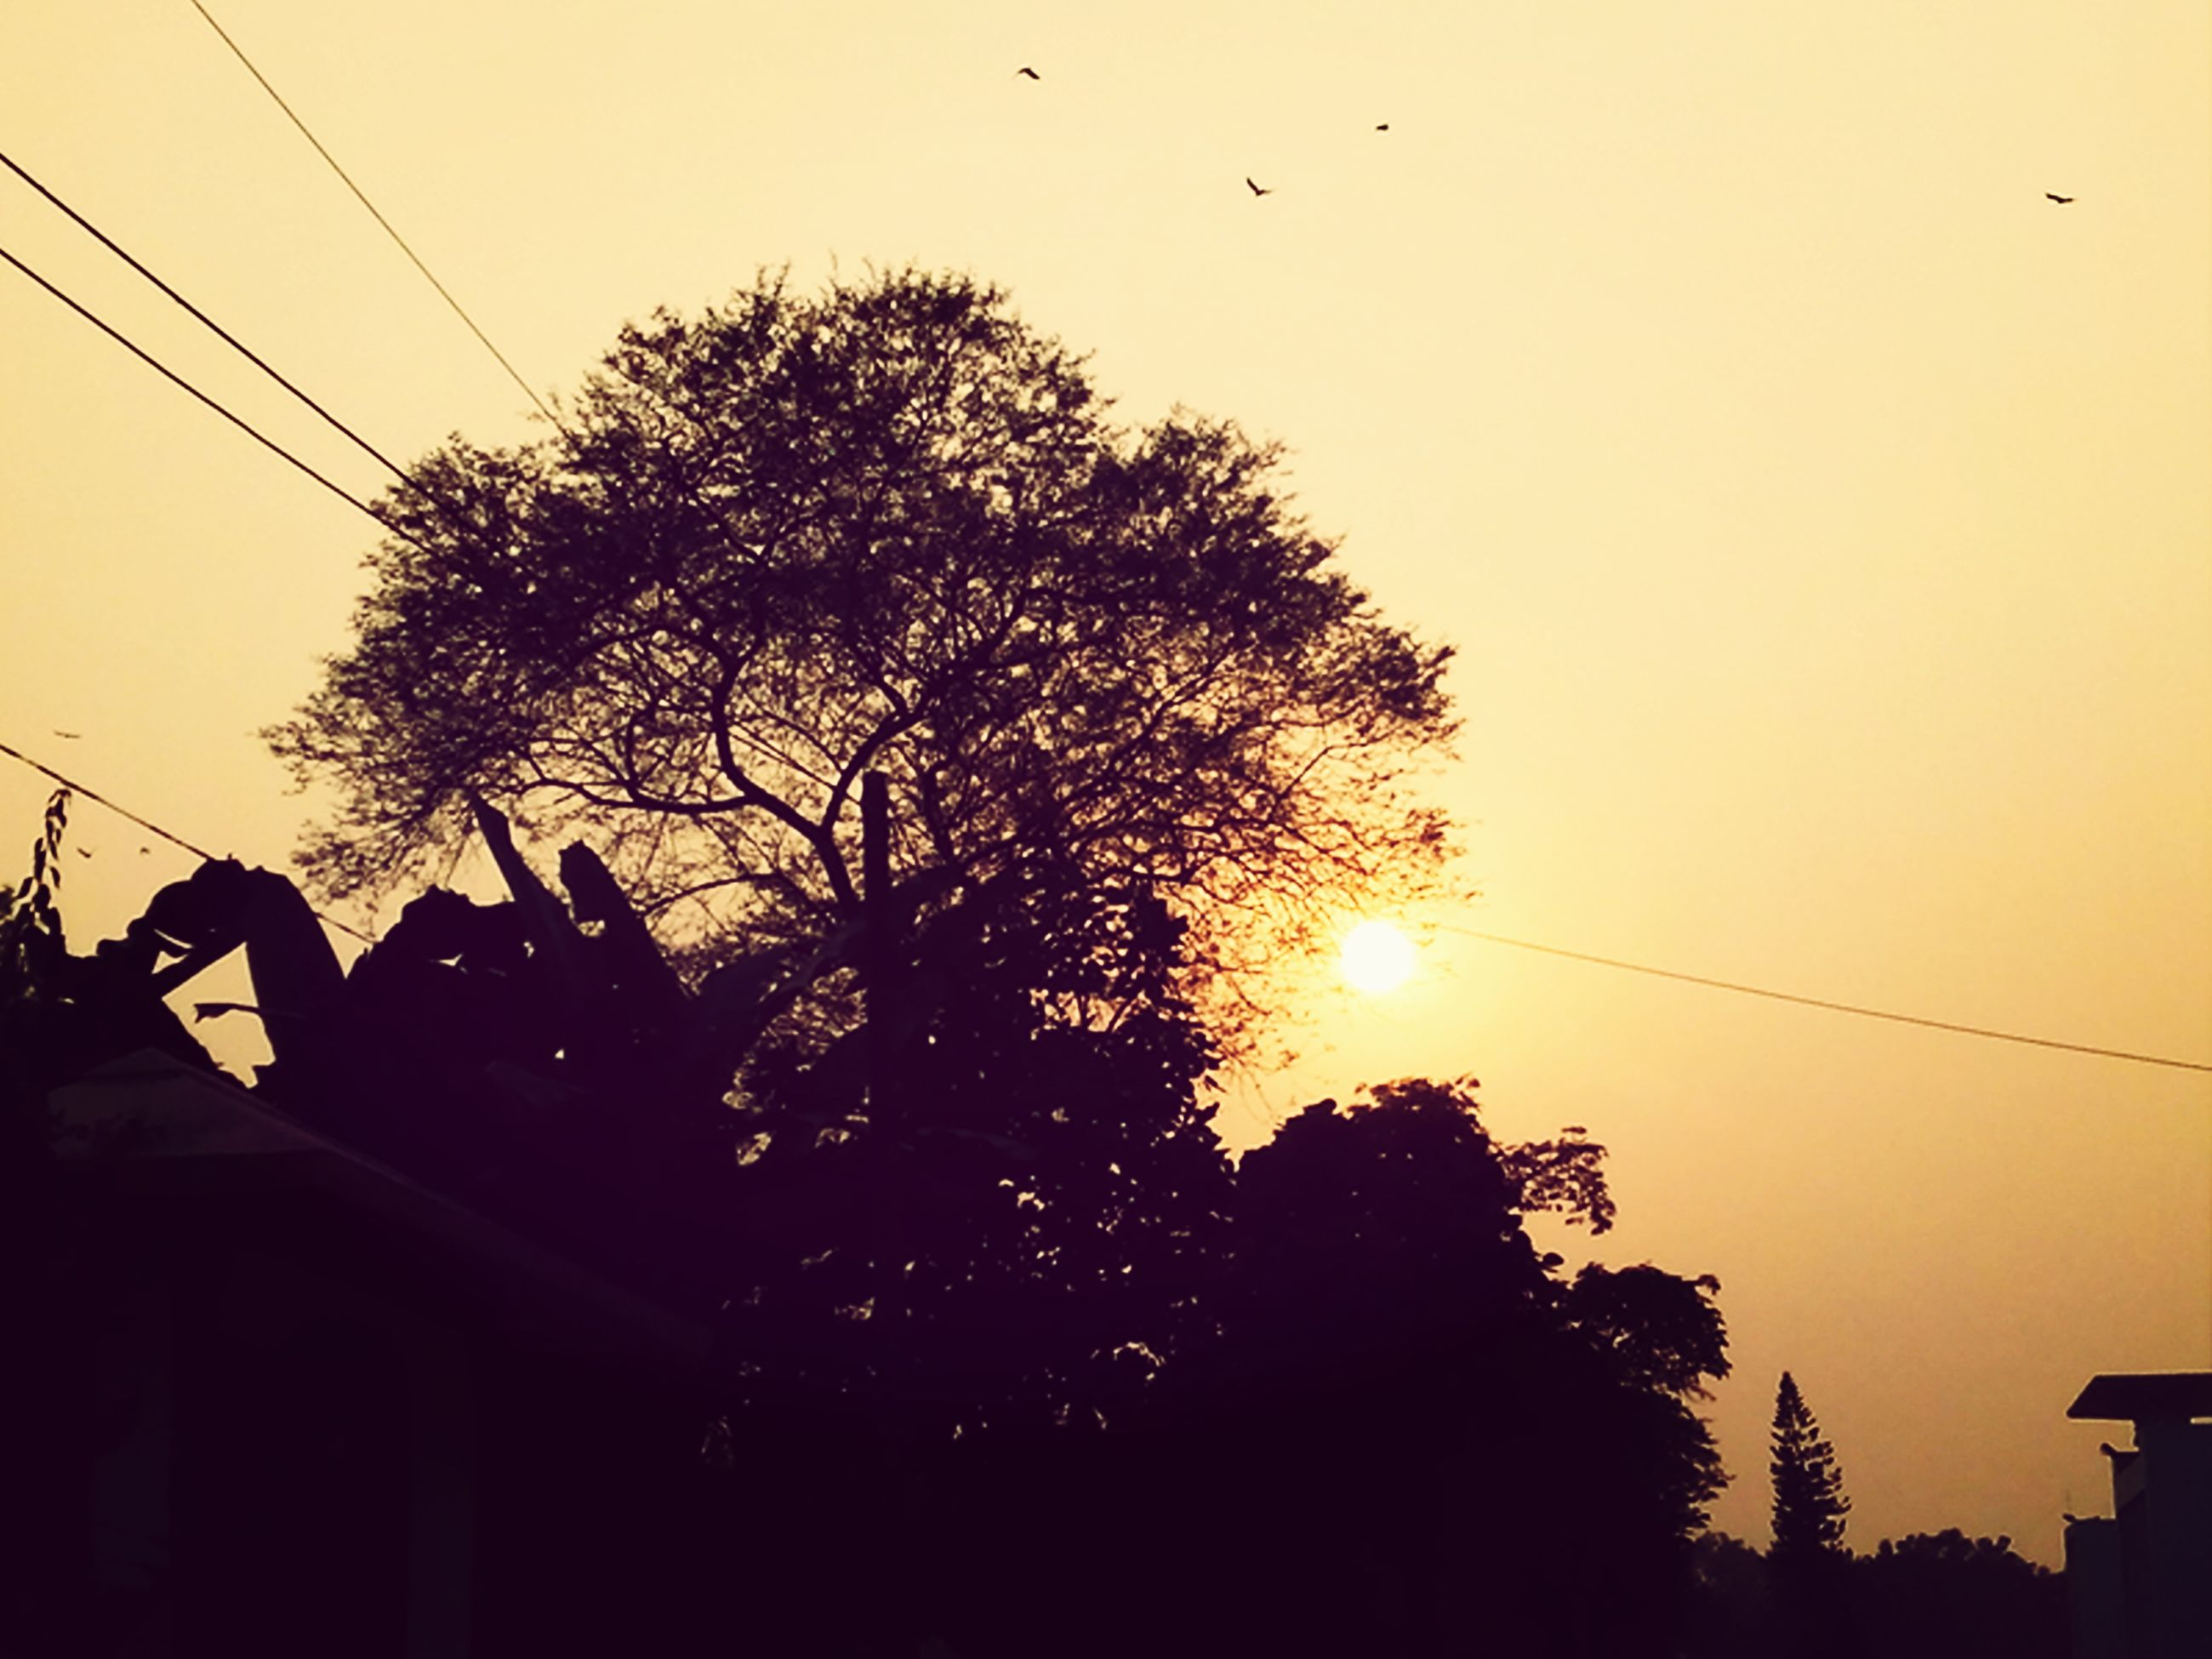 sunset, silhouette, power line, low angle view, tree, cable, bird, animal themes, sky, electricity pylon, orange color, animals in the wild, wildlife, flying, electricity, nature, sun, power cable, connection, beauty in nature